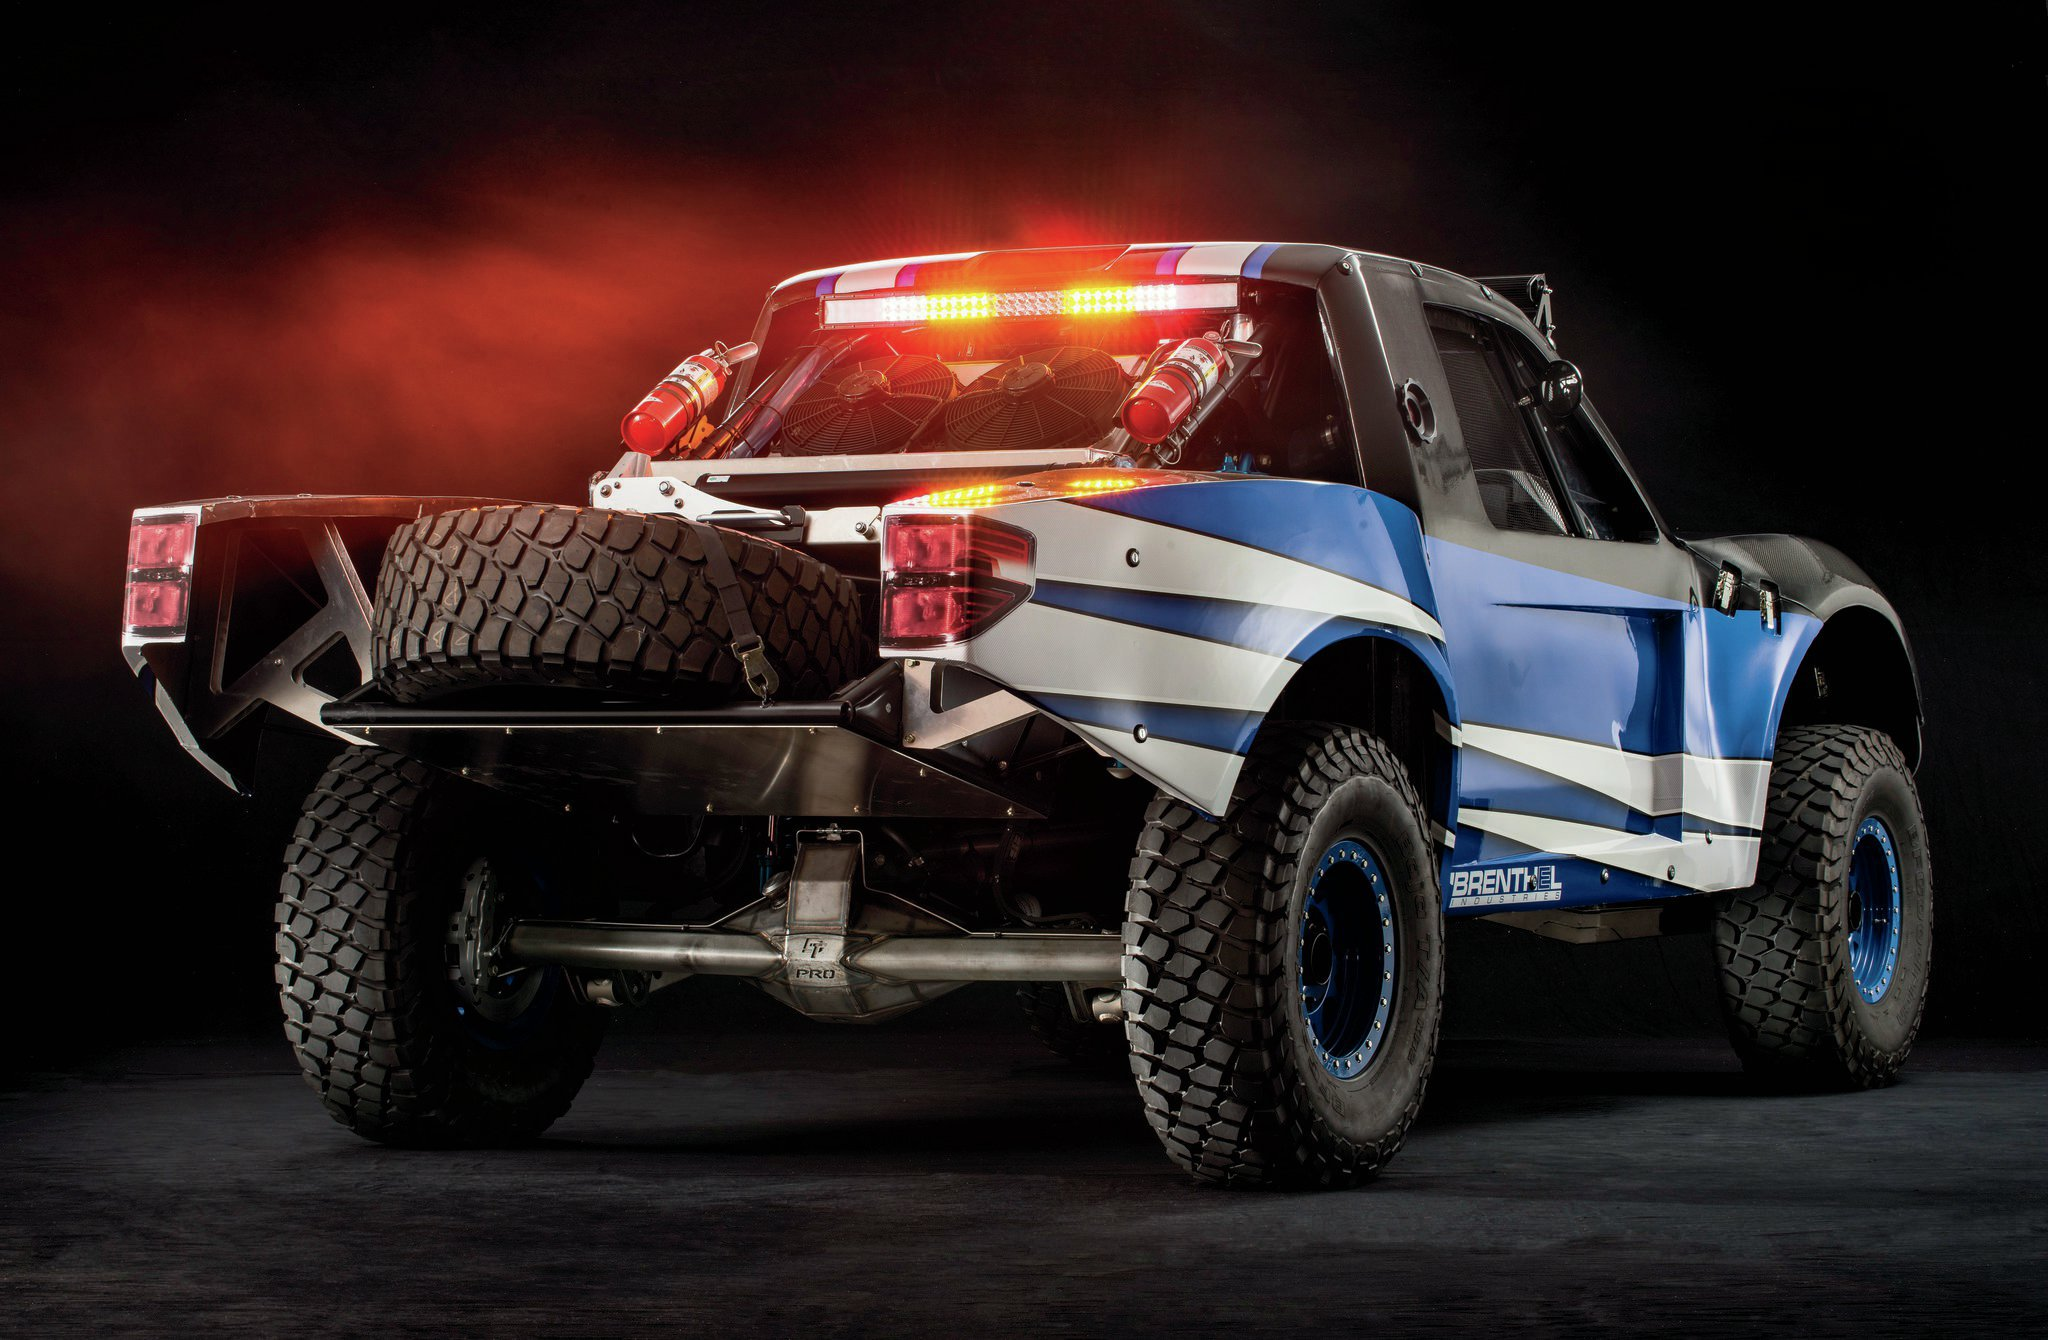 Wearing a full carbon-fiber body, this Brenthel Class 6100 Trophy Truck should maybe be called Trophy Trick.